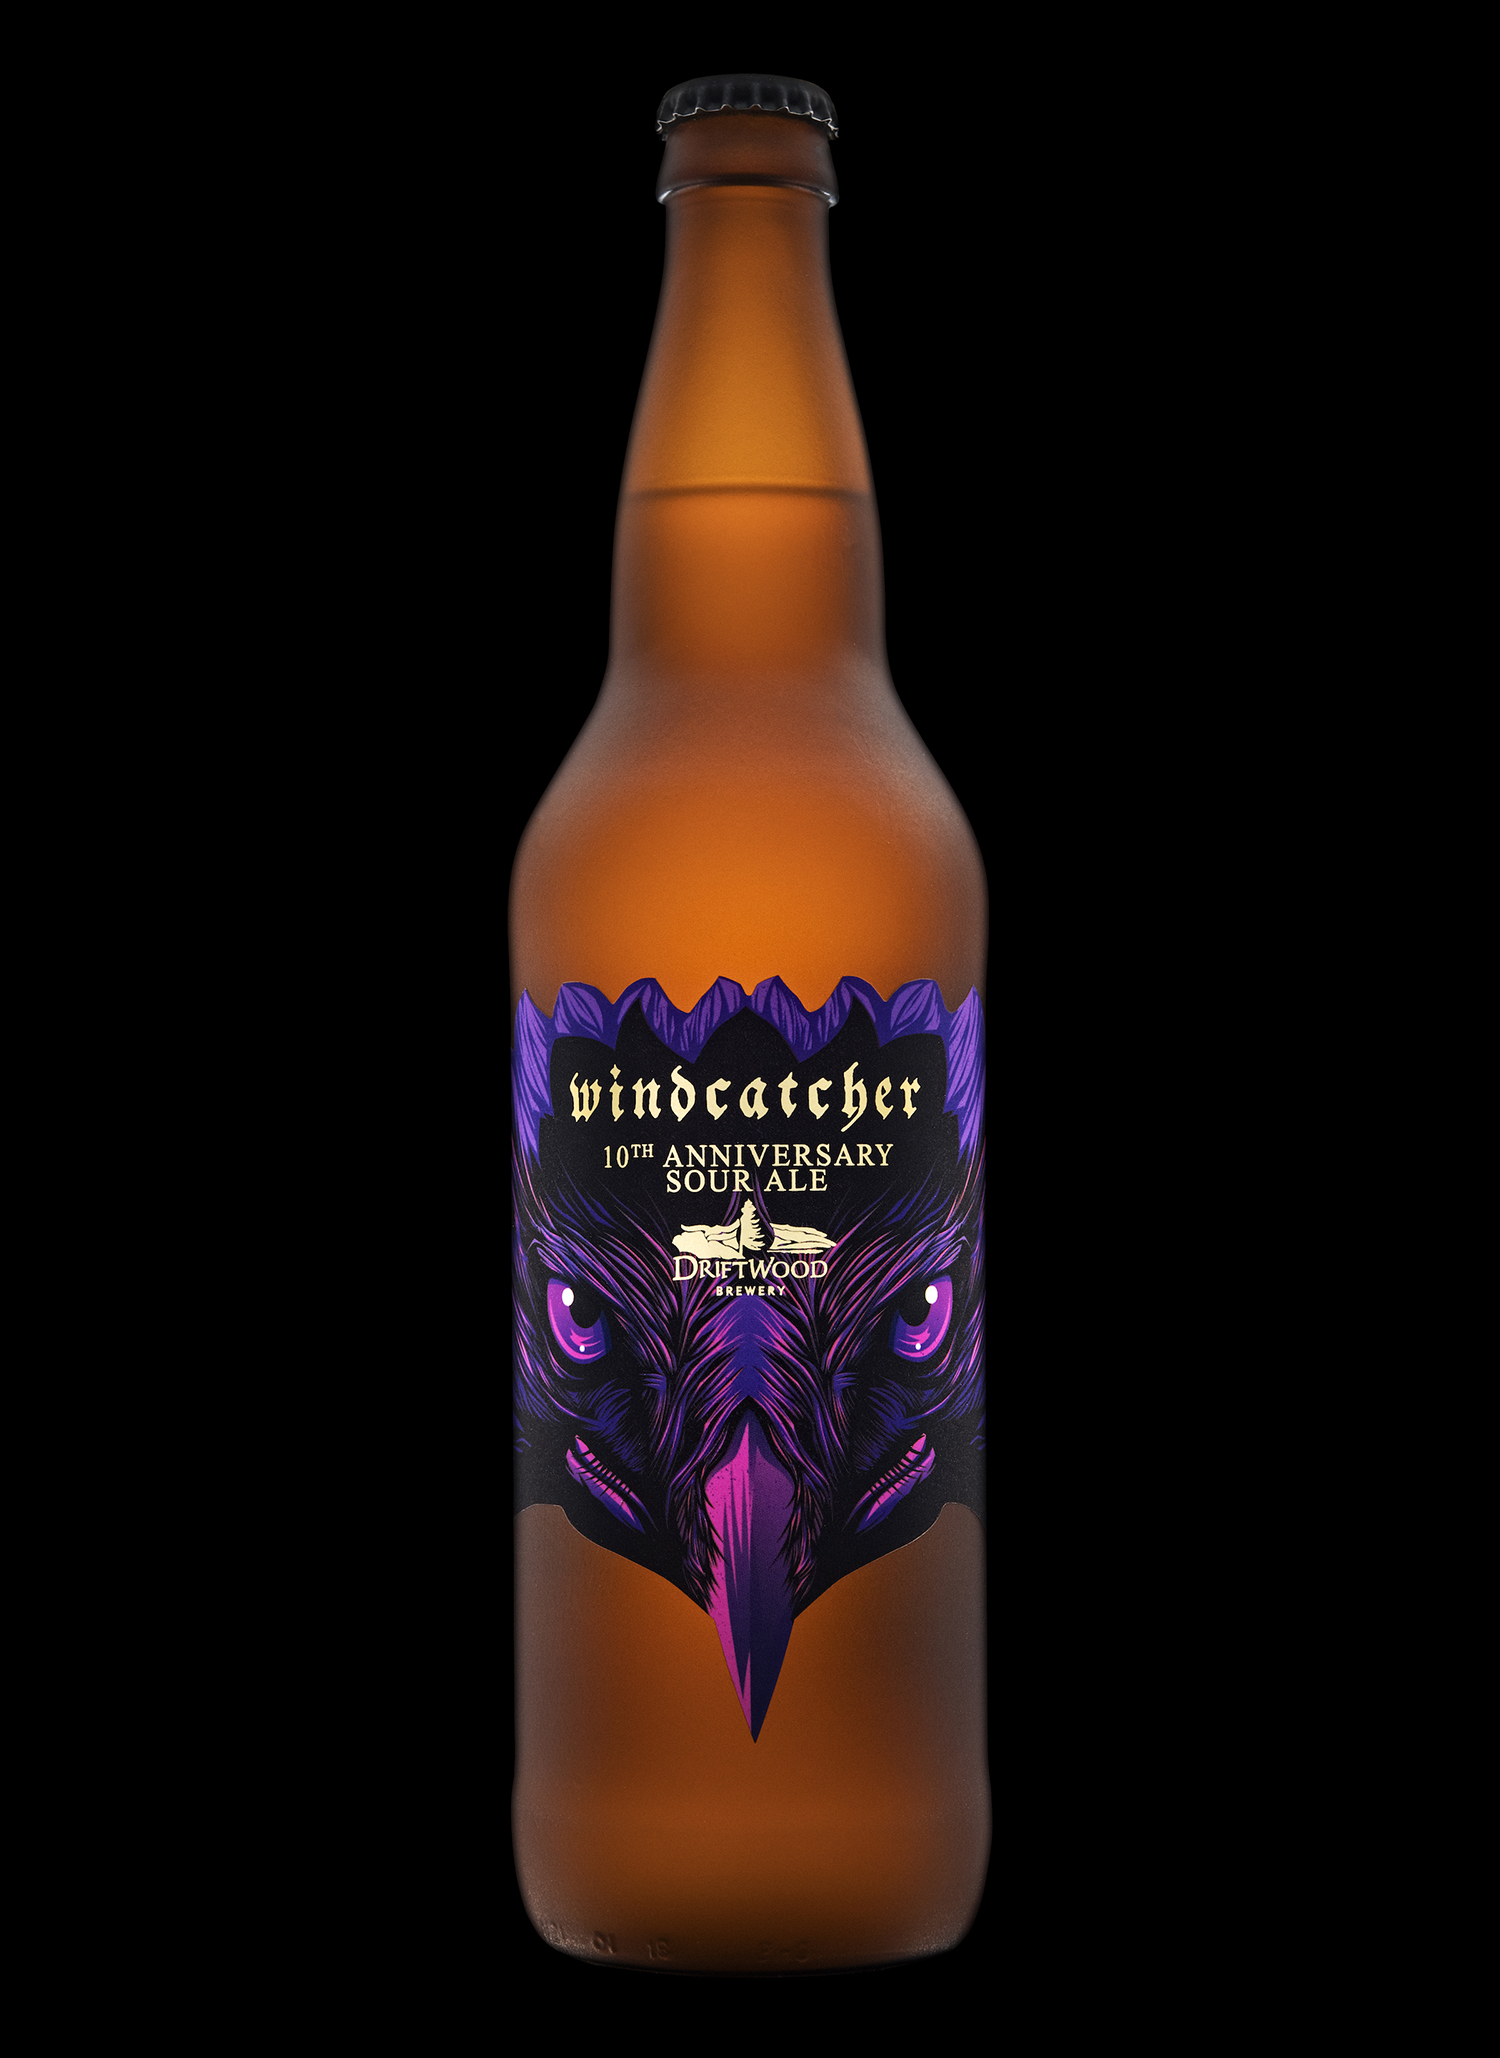 Packaging Design for Driftwood Brewery's Windcatcher Anniversary Ale